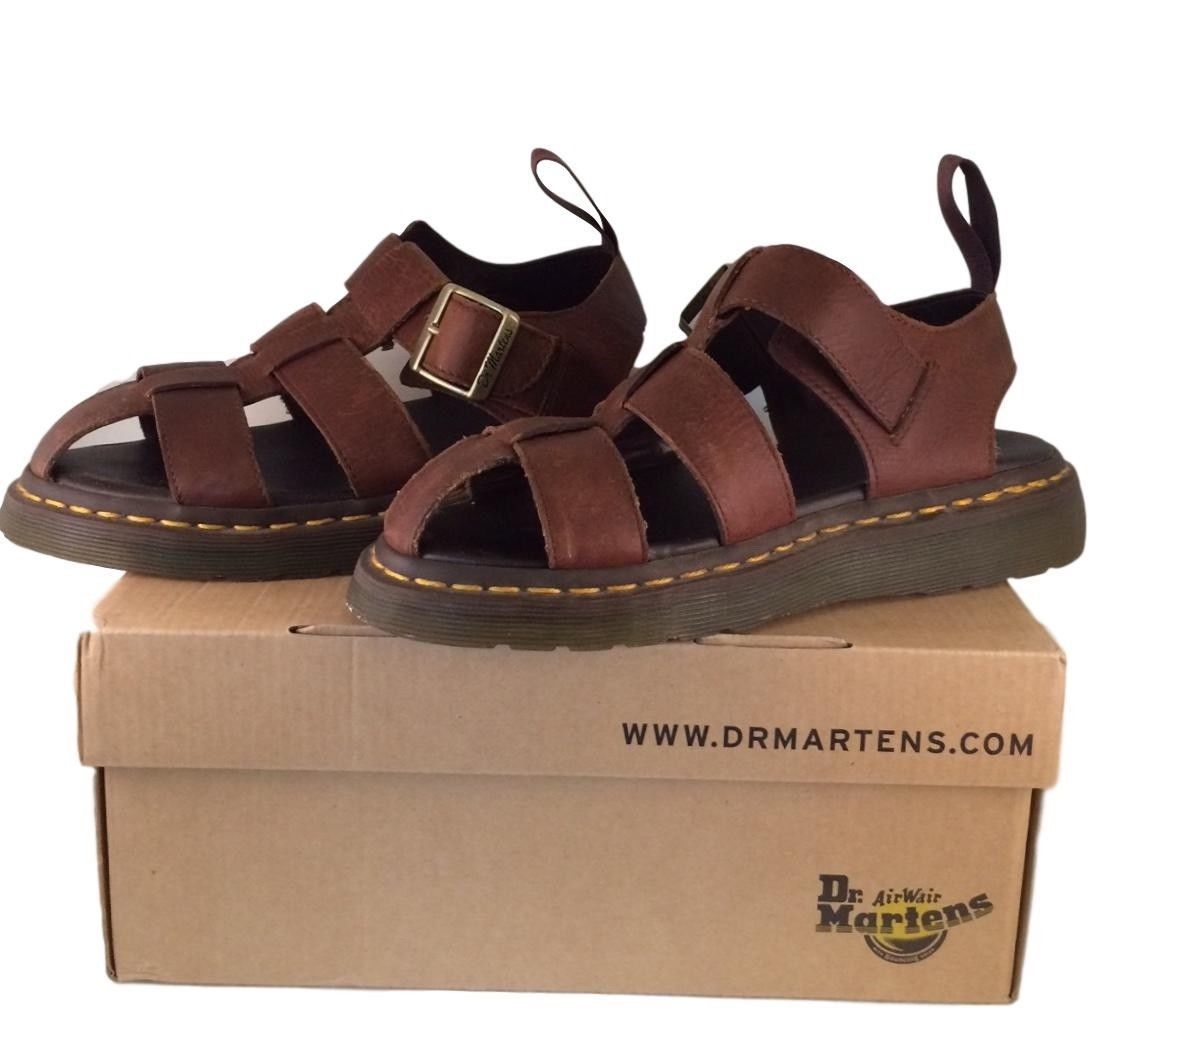 2f7b9791bd6 Doc Martens AirWair Men s Tan Fisherman Sandals - Leather - Size 7 US with  Box -  29.99